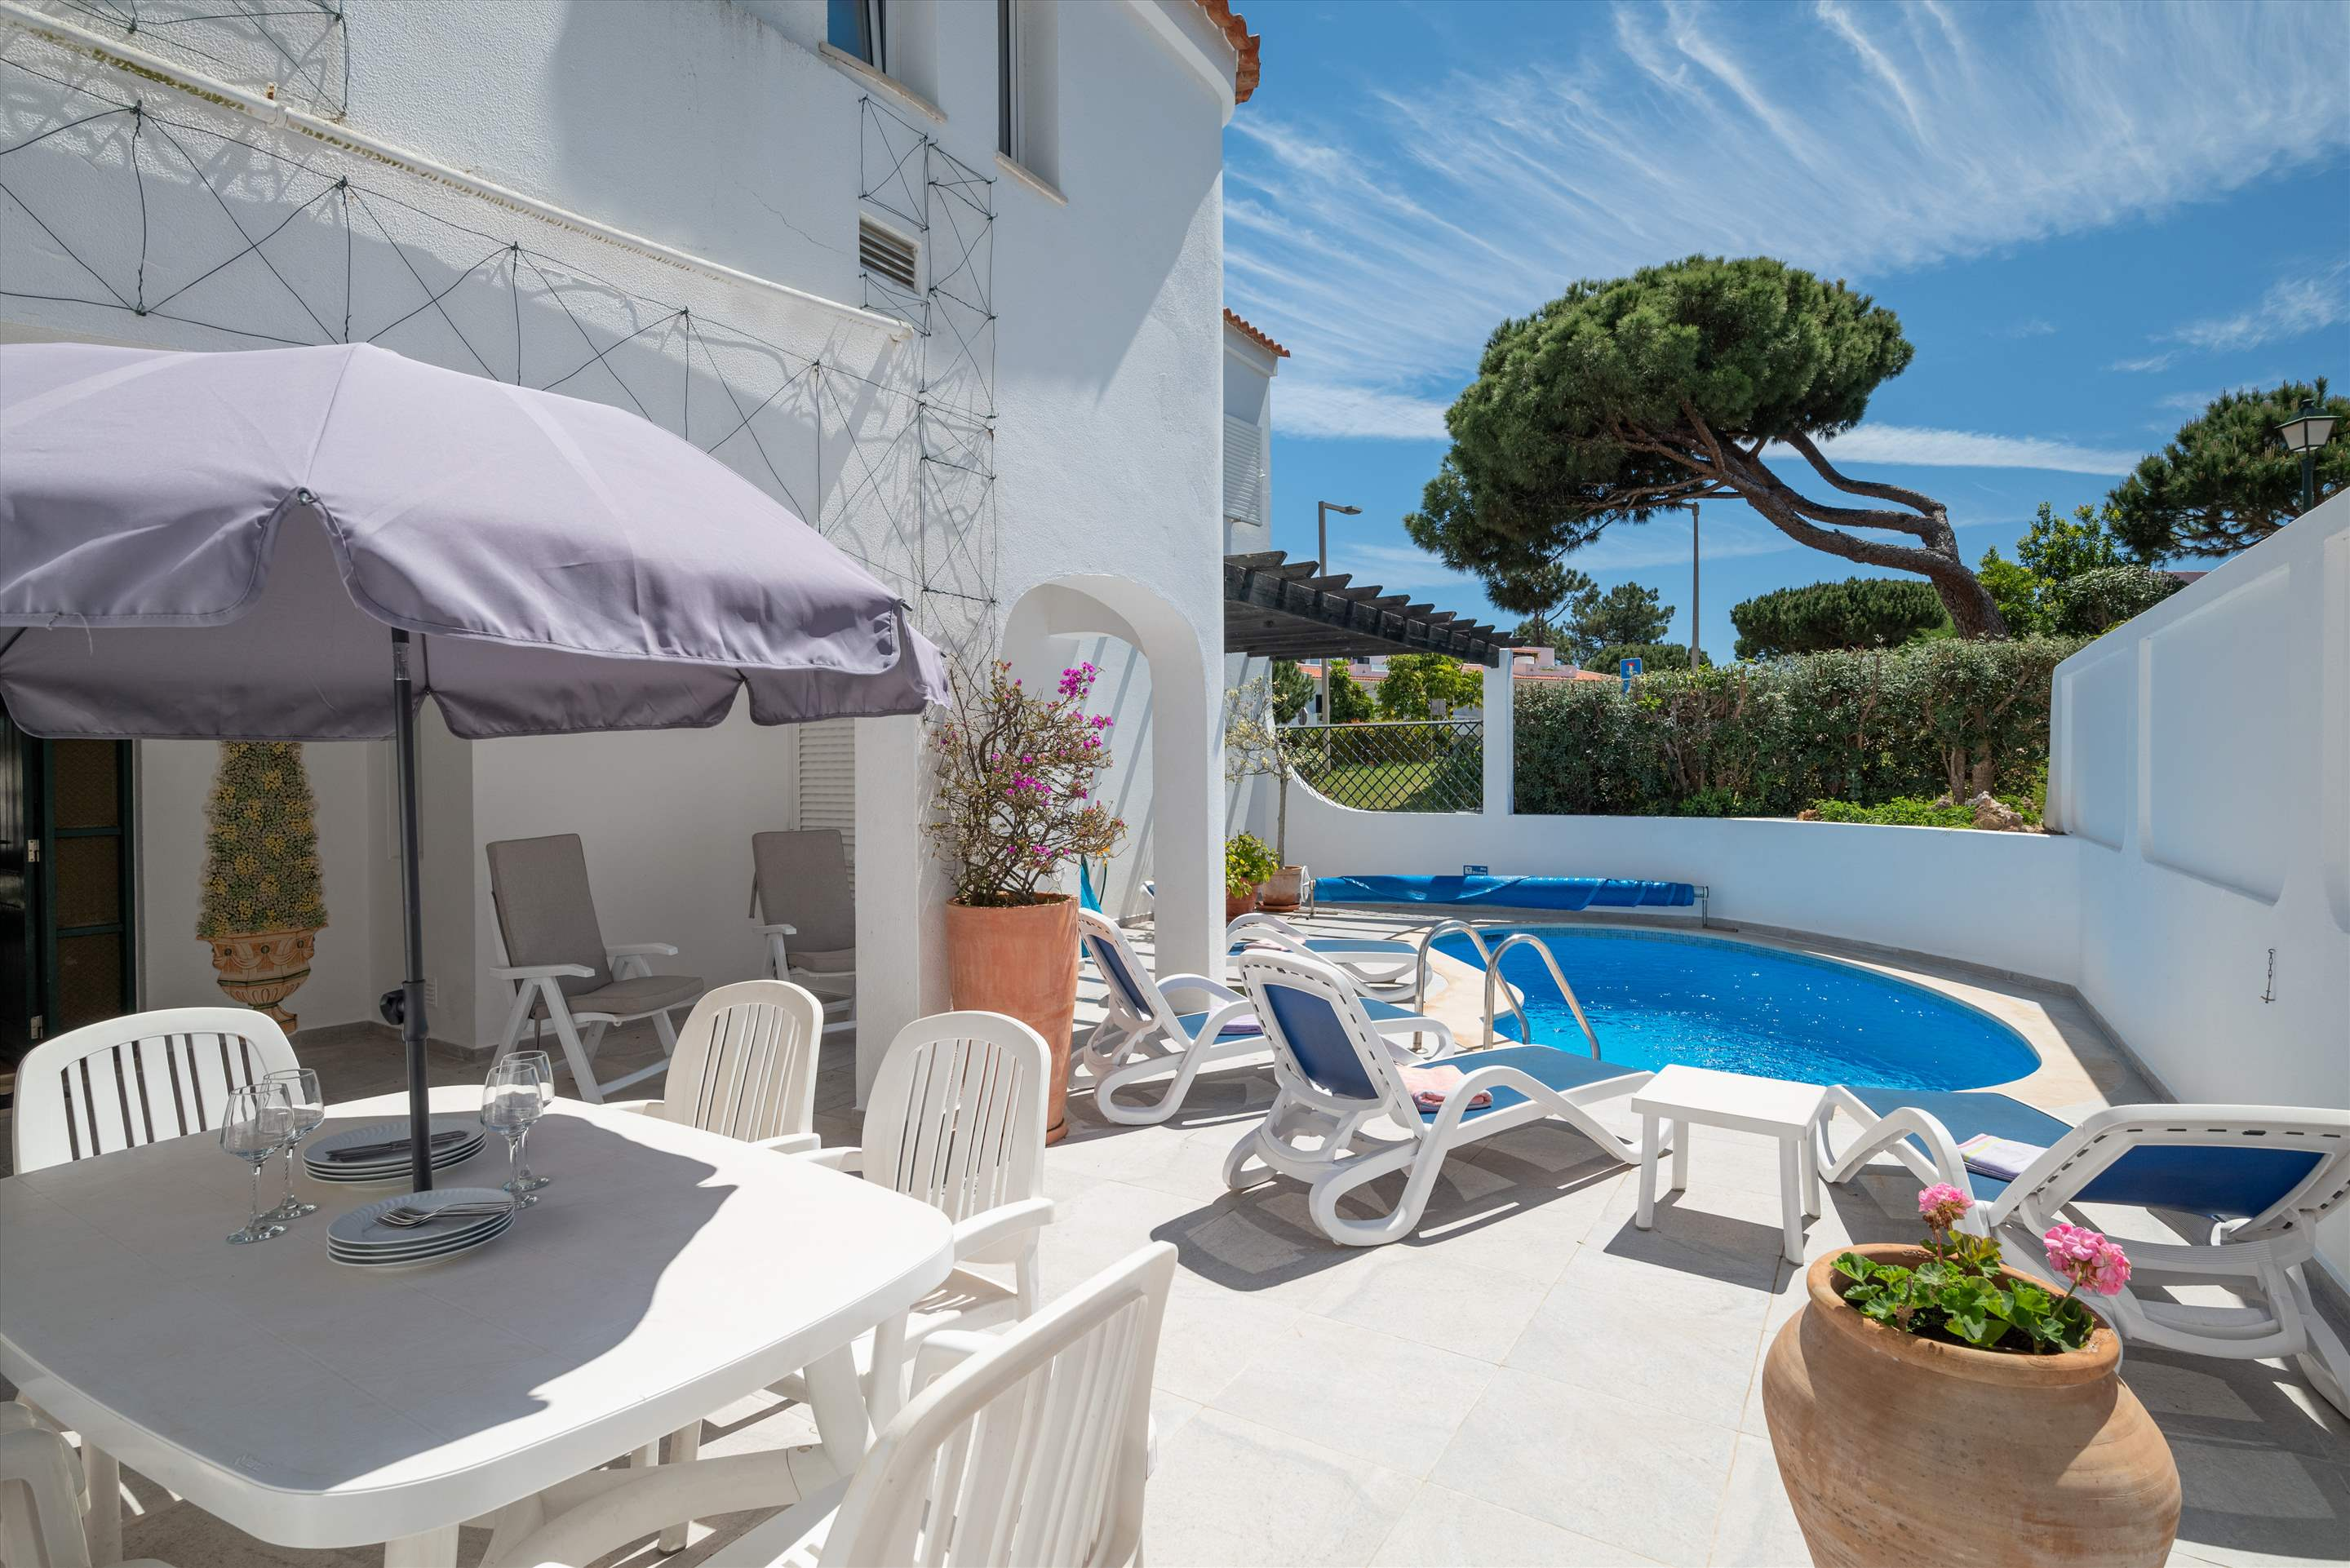 Casa Bella, 3 bedroom apartment in Vale do Lobo, Algarve Photo #2